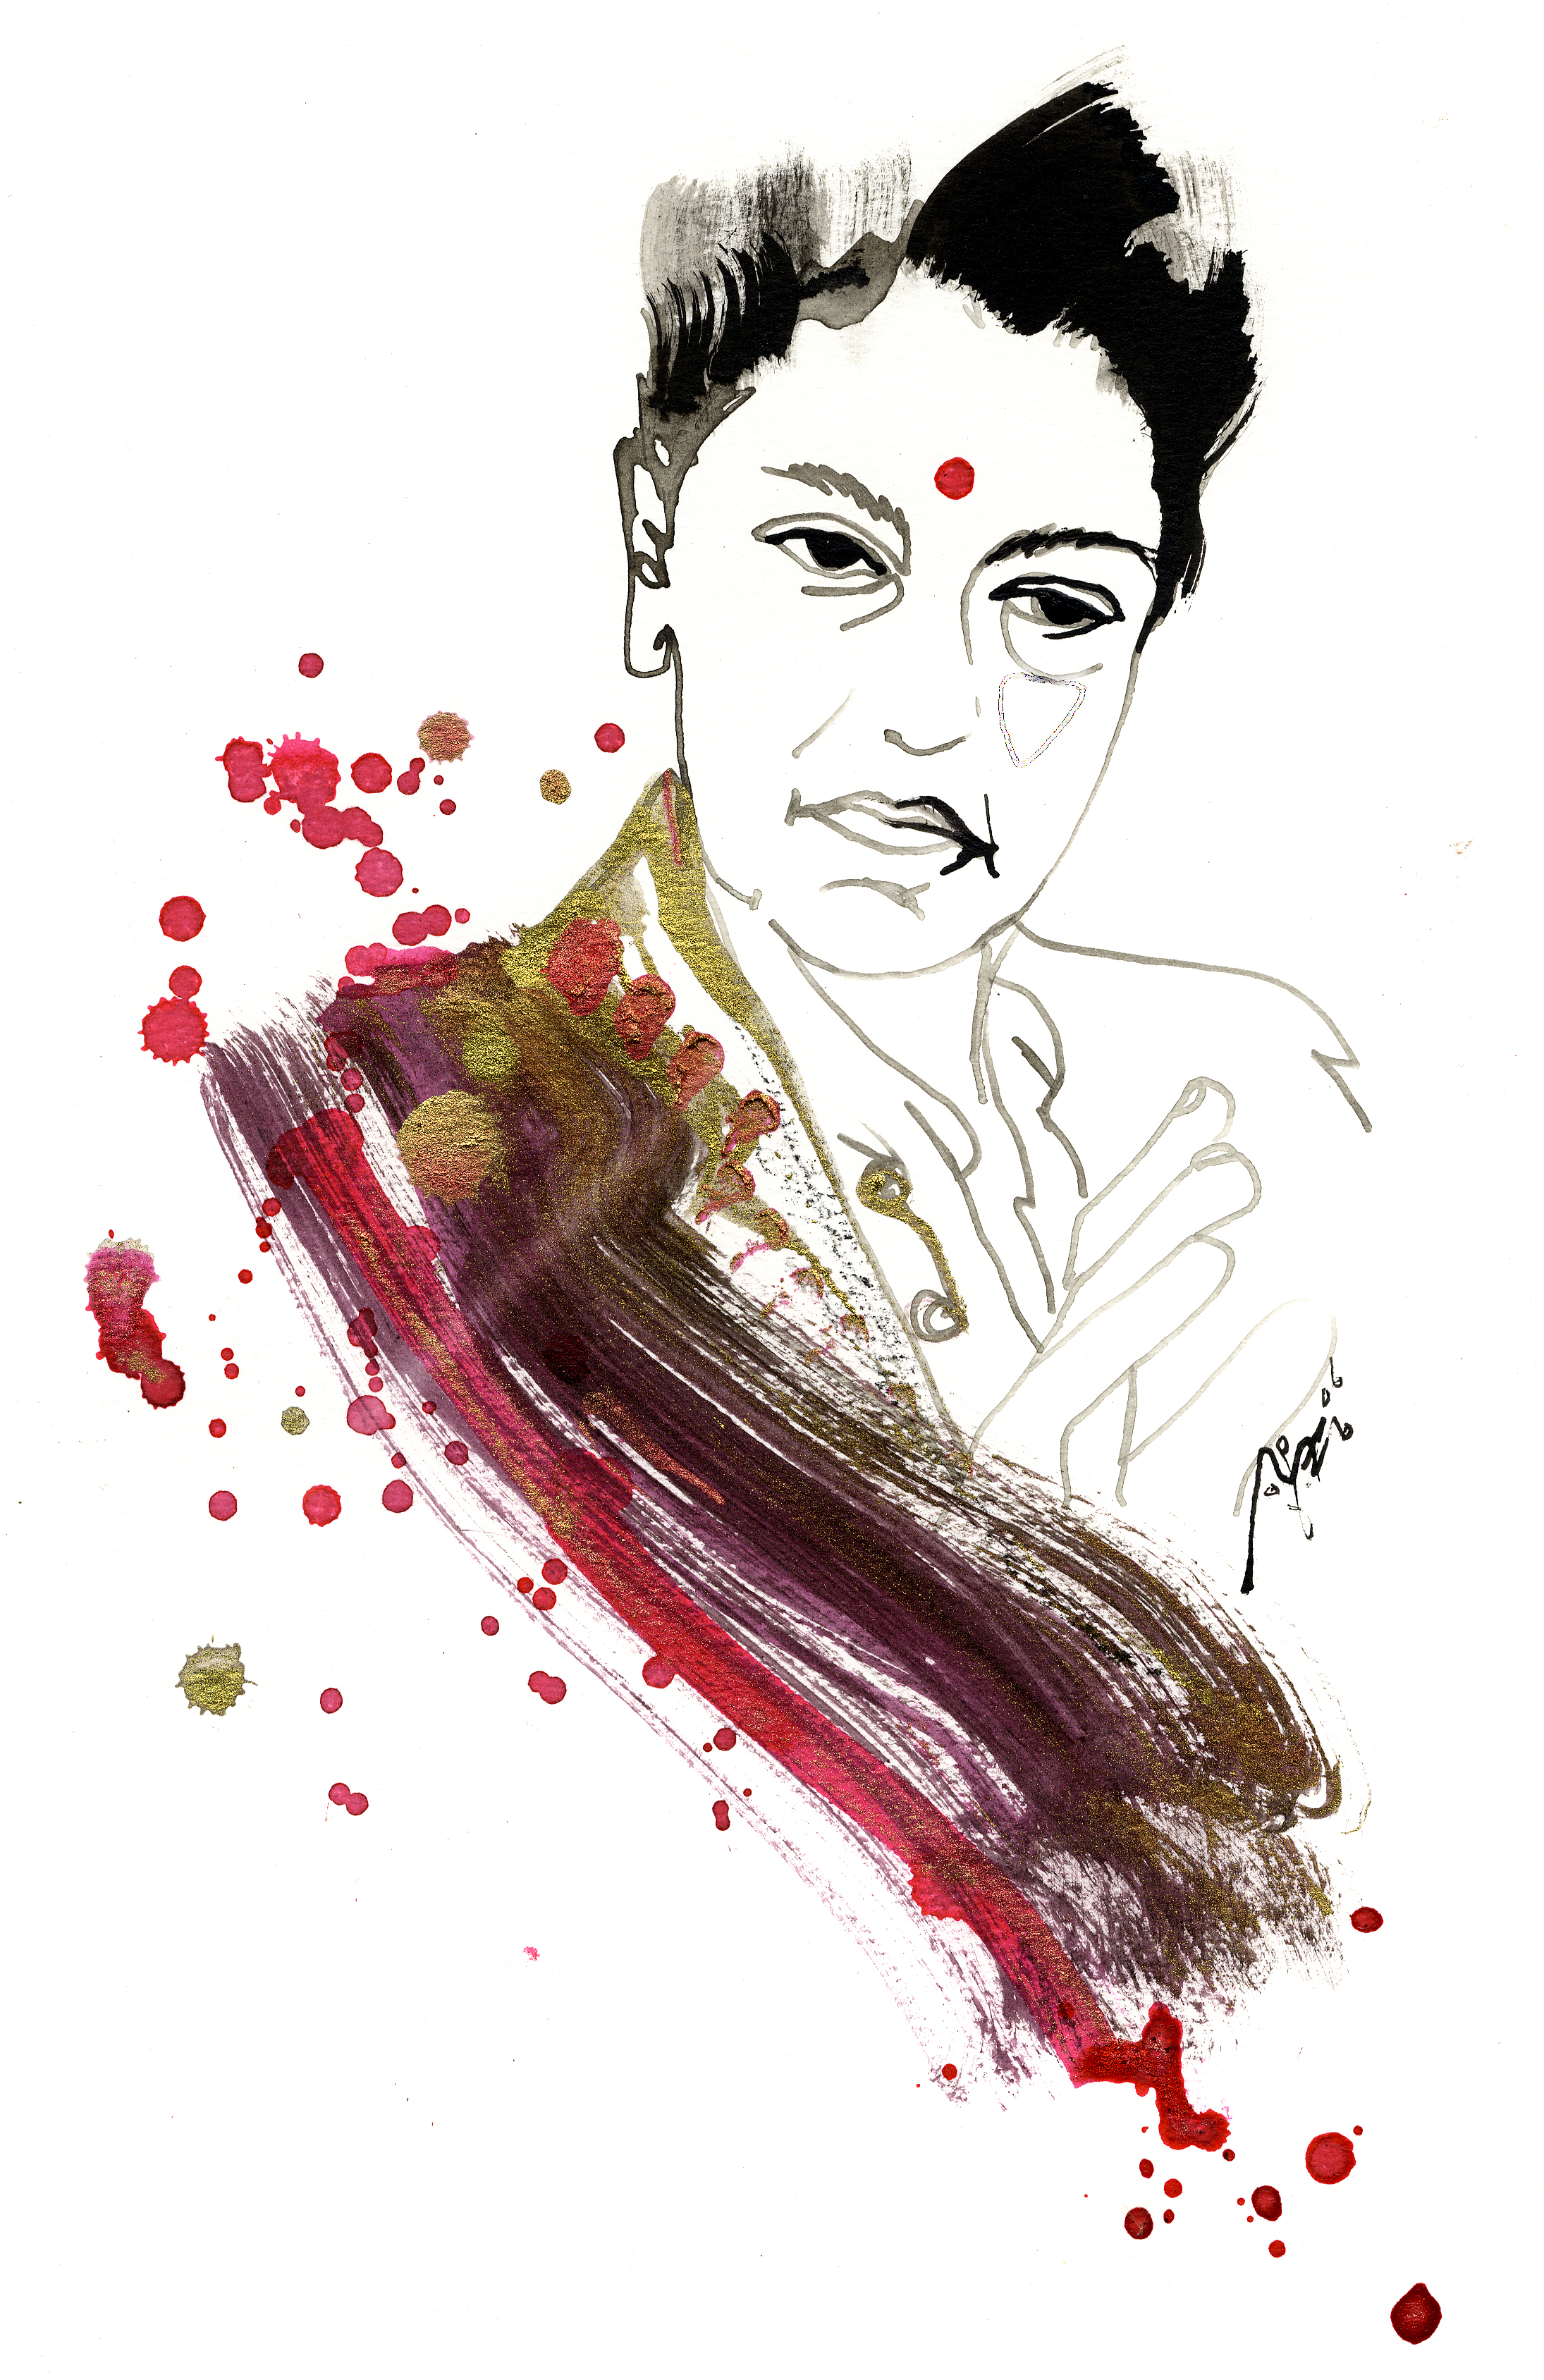 gayatri chakravorty spivaks essay can the subaltern speak Can the subaltern speak (1988) by gayatri spivak relates to the manner in which western cultures investigate other cultures  that essays like this.